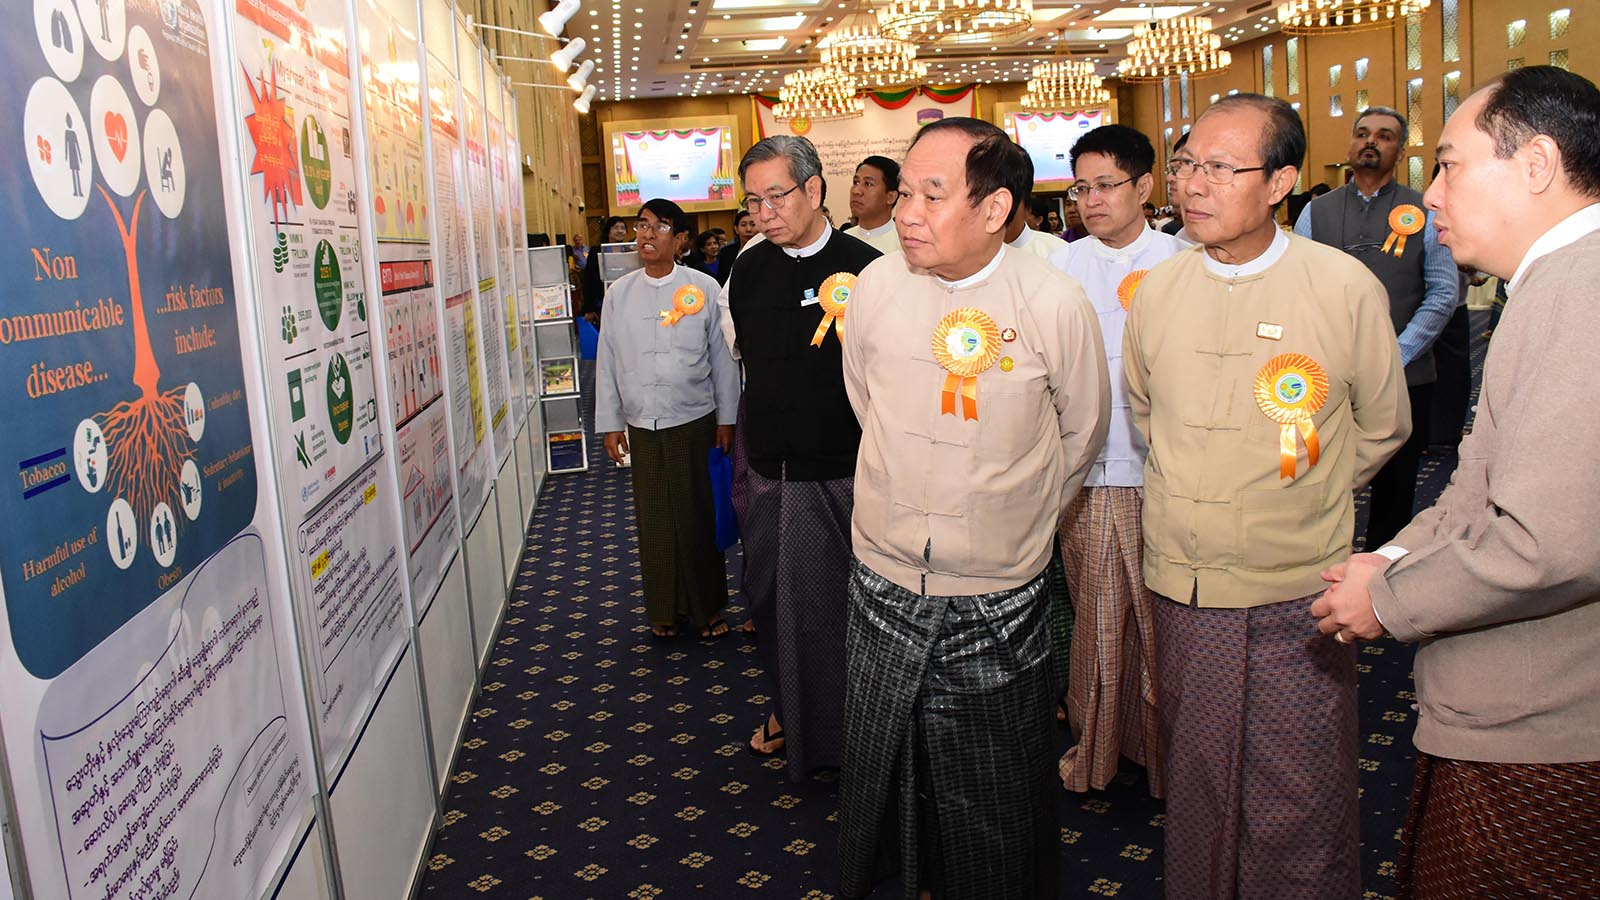 Union Minister Dr Myint Htwe and Nay Pyi Taw Council Chairman Dr Myo Aung look around the posters displayed on the exhibition hall during the ceremony in Nay Pyi Taw yesterday. Photo: MNA